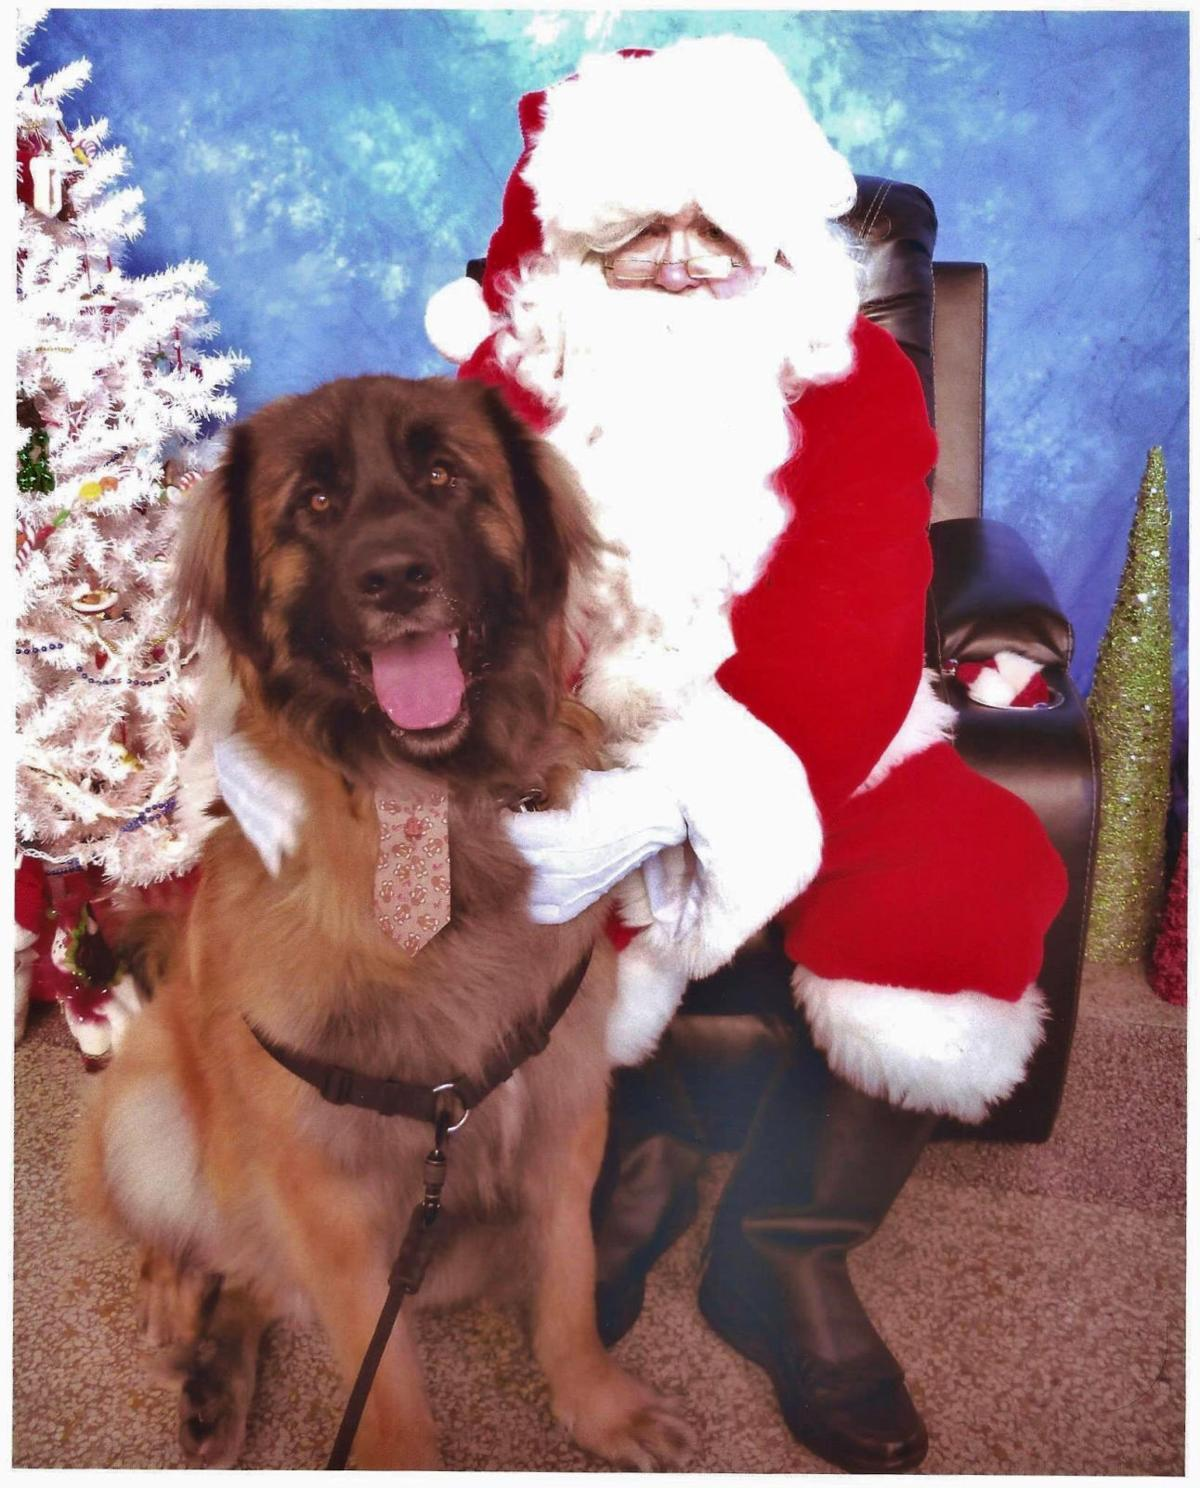 Pet project: Clatsop Animal Assistance Annual Holiday Party and Fundraiser Help homeless cats and dogs with treats, raffle, auction and pics with Santa